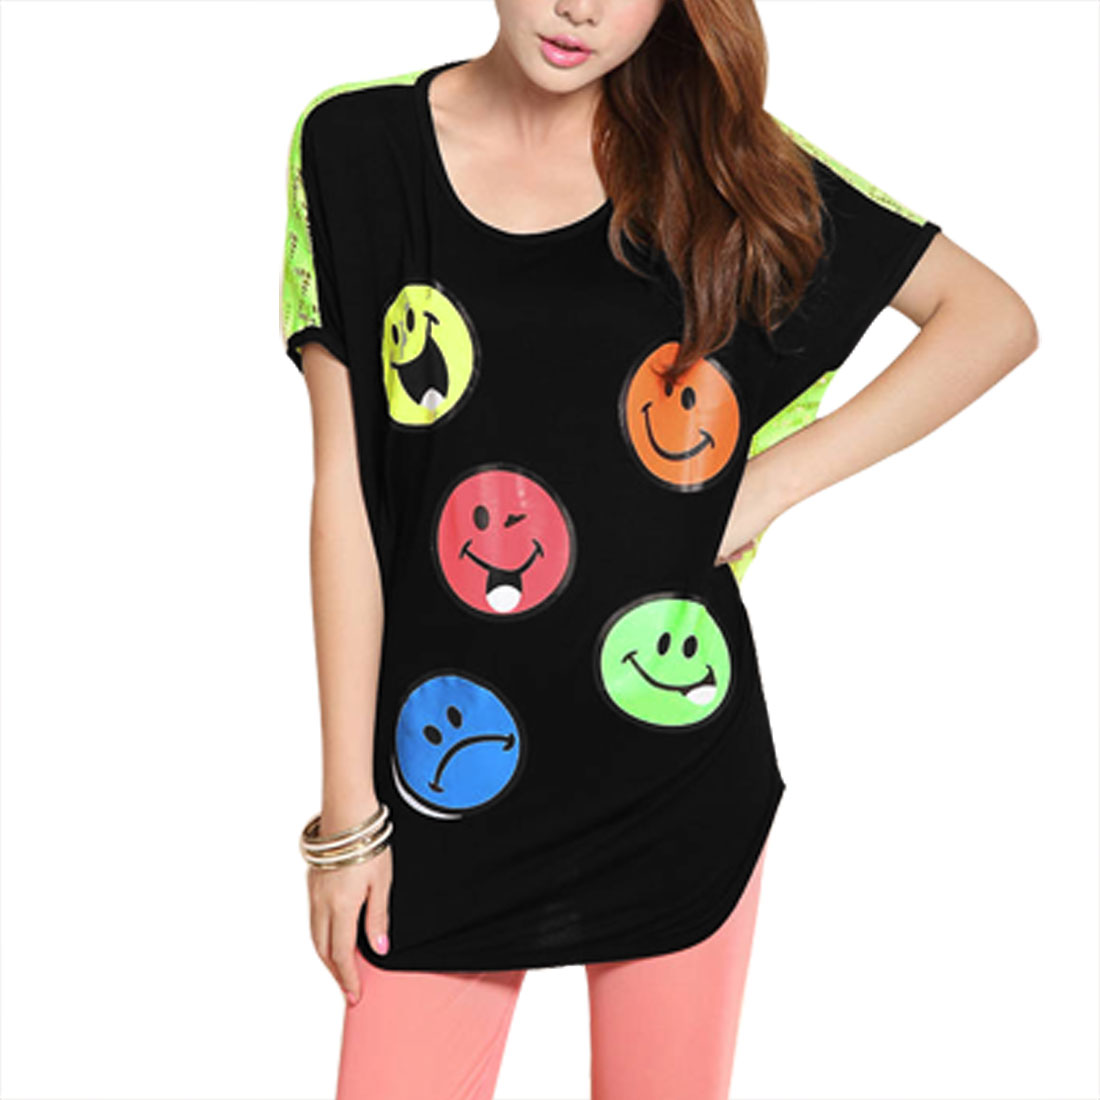 Lady Green Batwing Sleeve Smile Face Print Round Hem Tee Shirt L